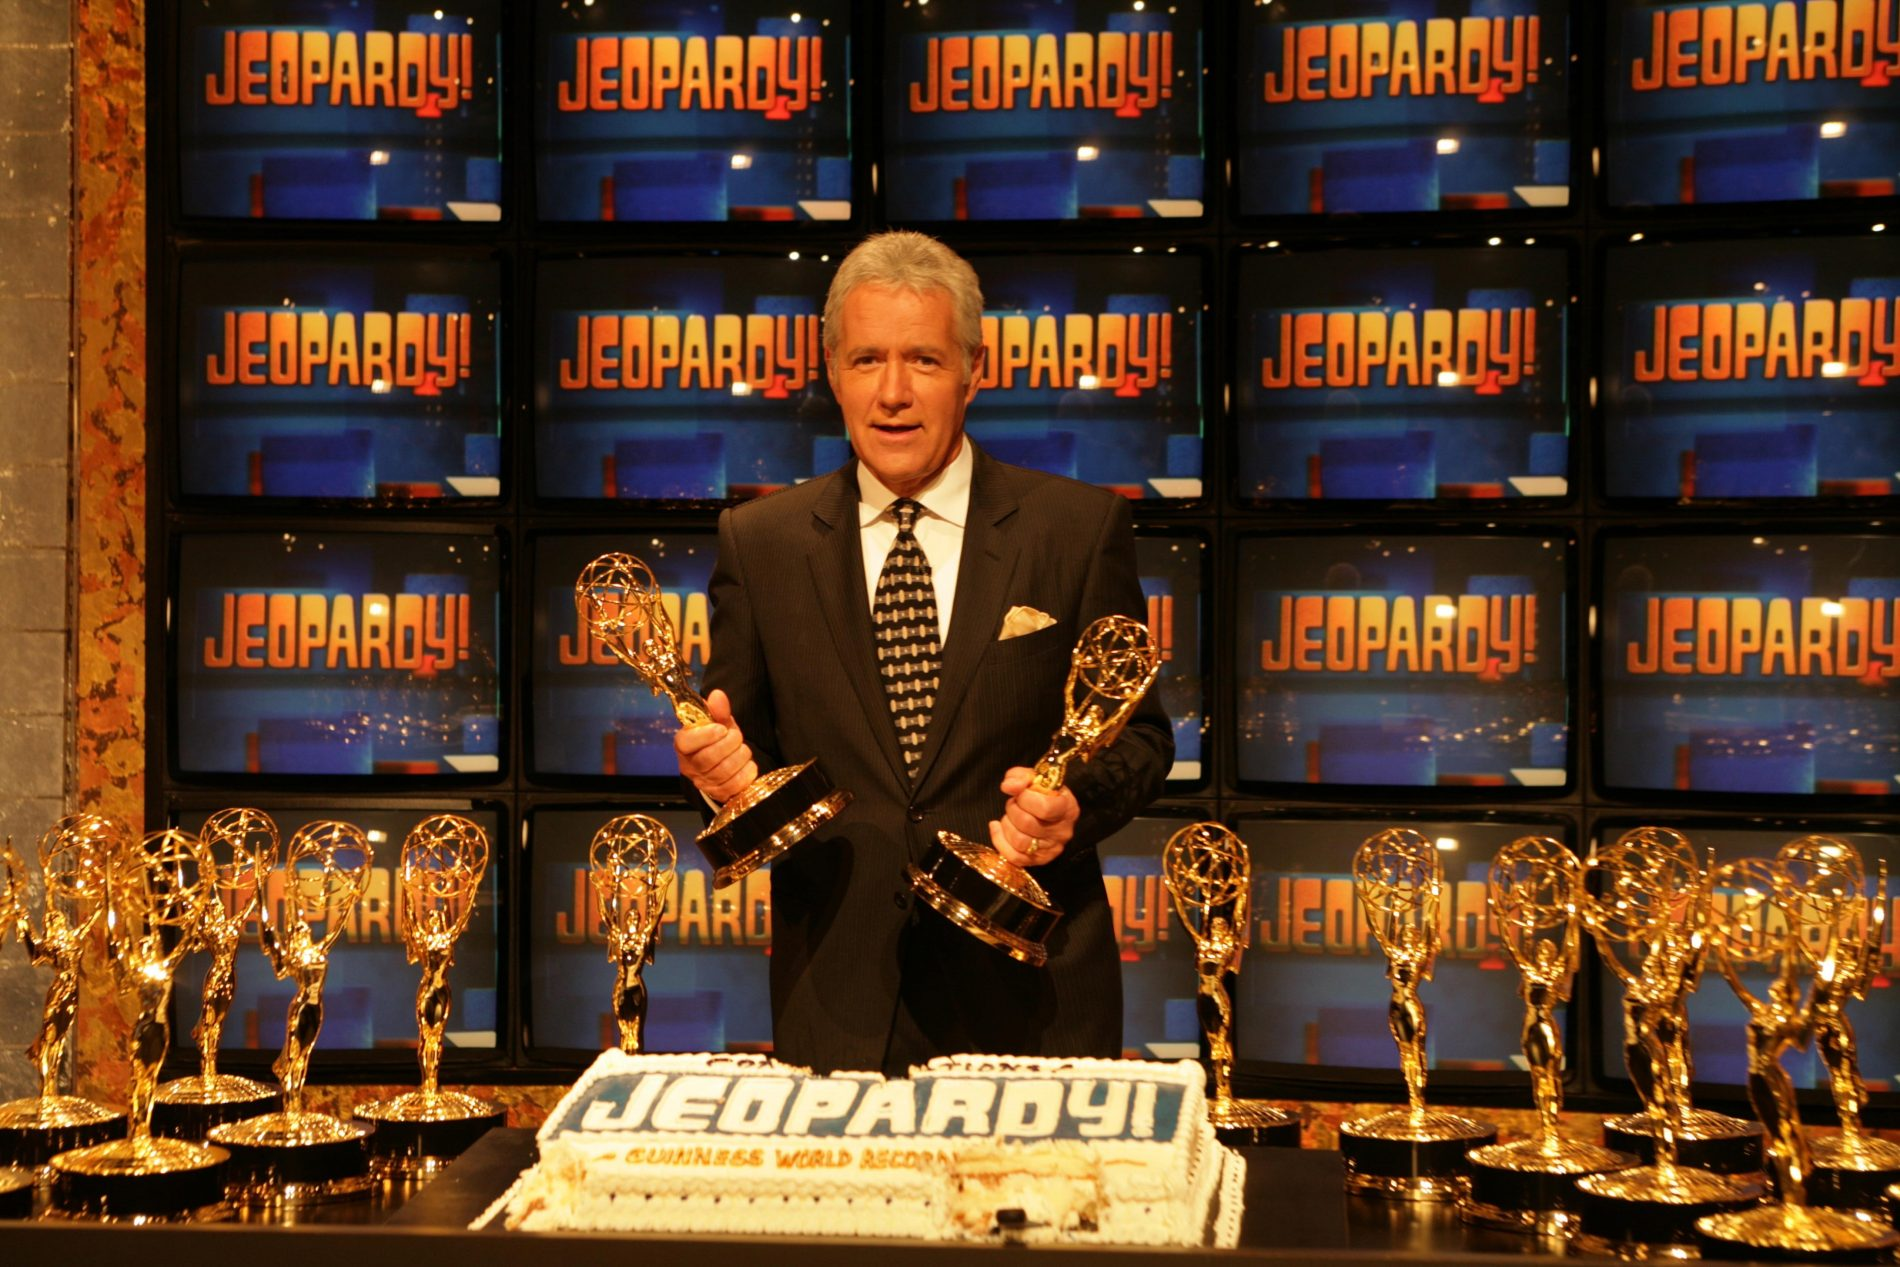 Alex Trebek at the ceremony entering Jeopardy in to the Guinness World Records for being the game show with the most Emmy Awards. Sony Studios, Culver City, CA. 11-01-05